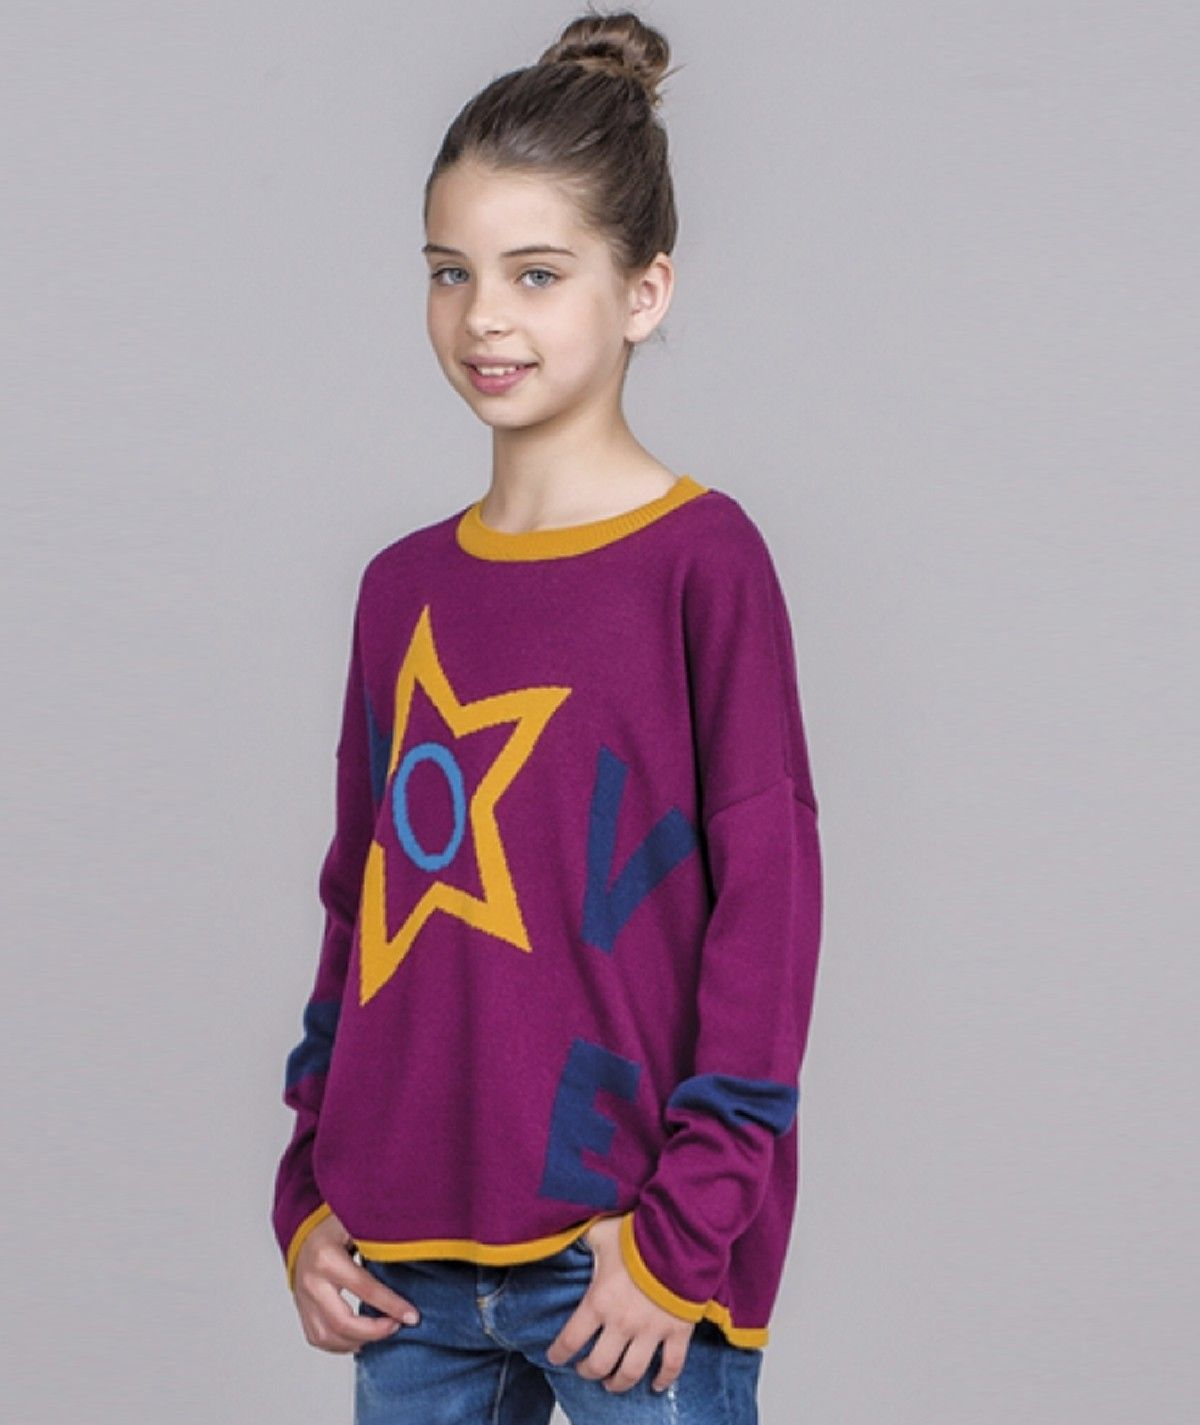 Camisola  love KIDS